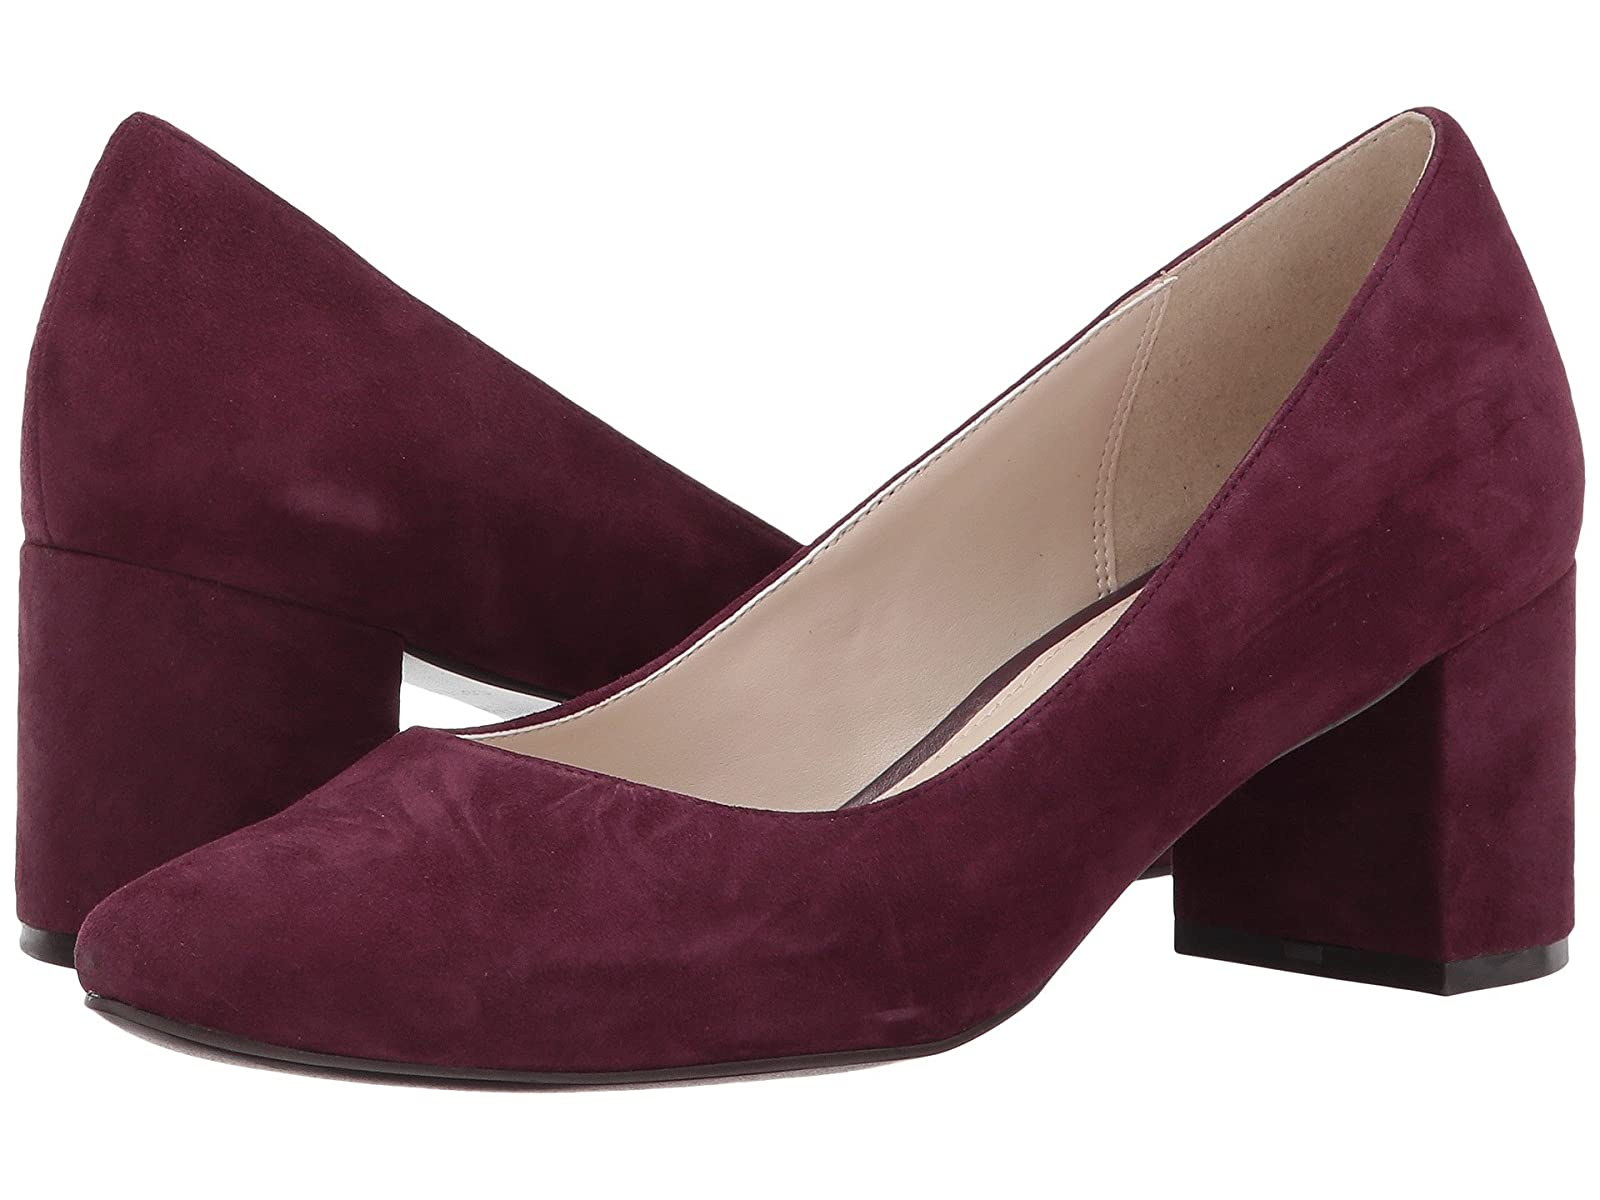 Cole Haan Justine Pump 55mmCheap and distinctive eye-catching shoes